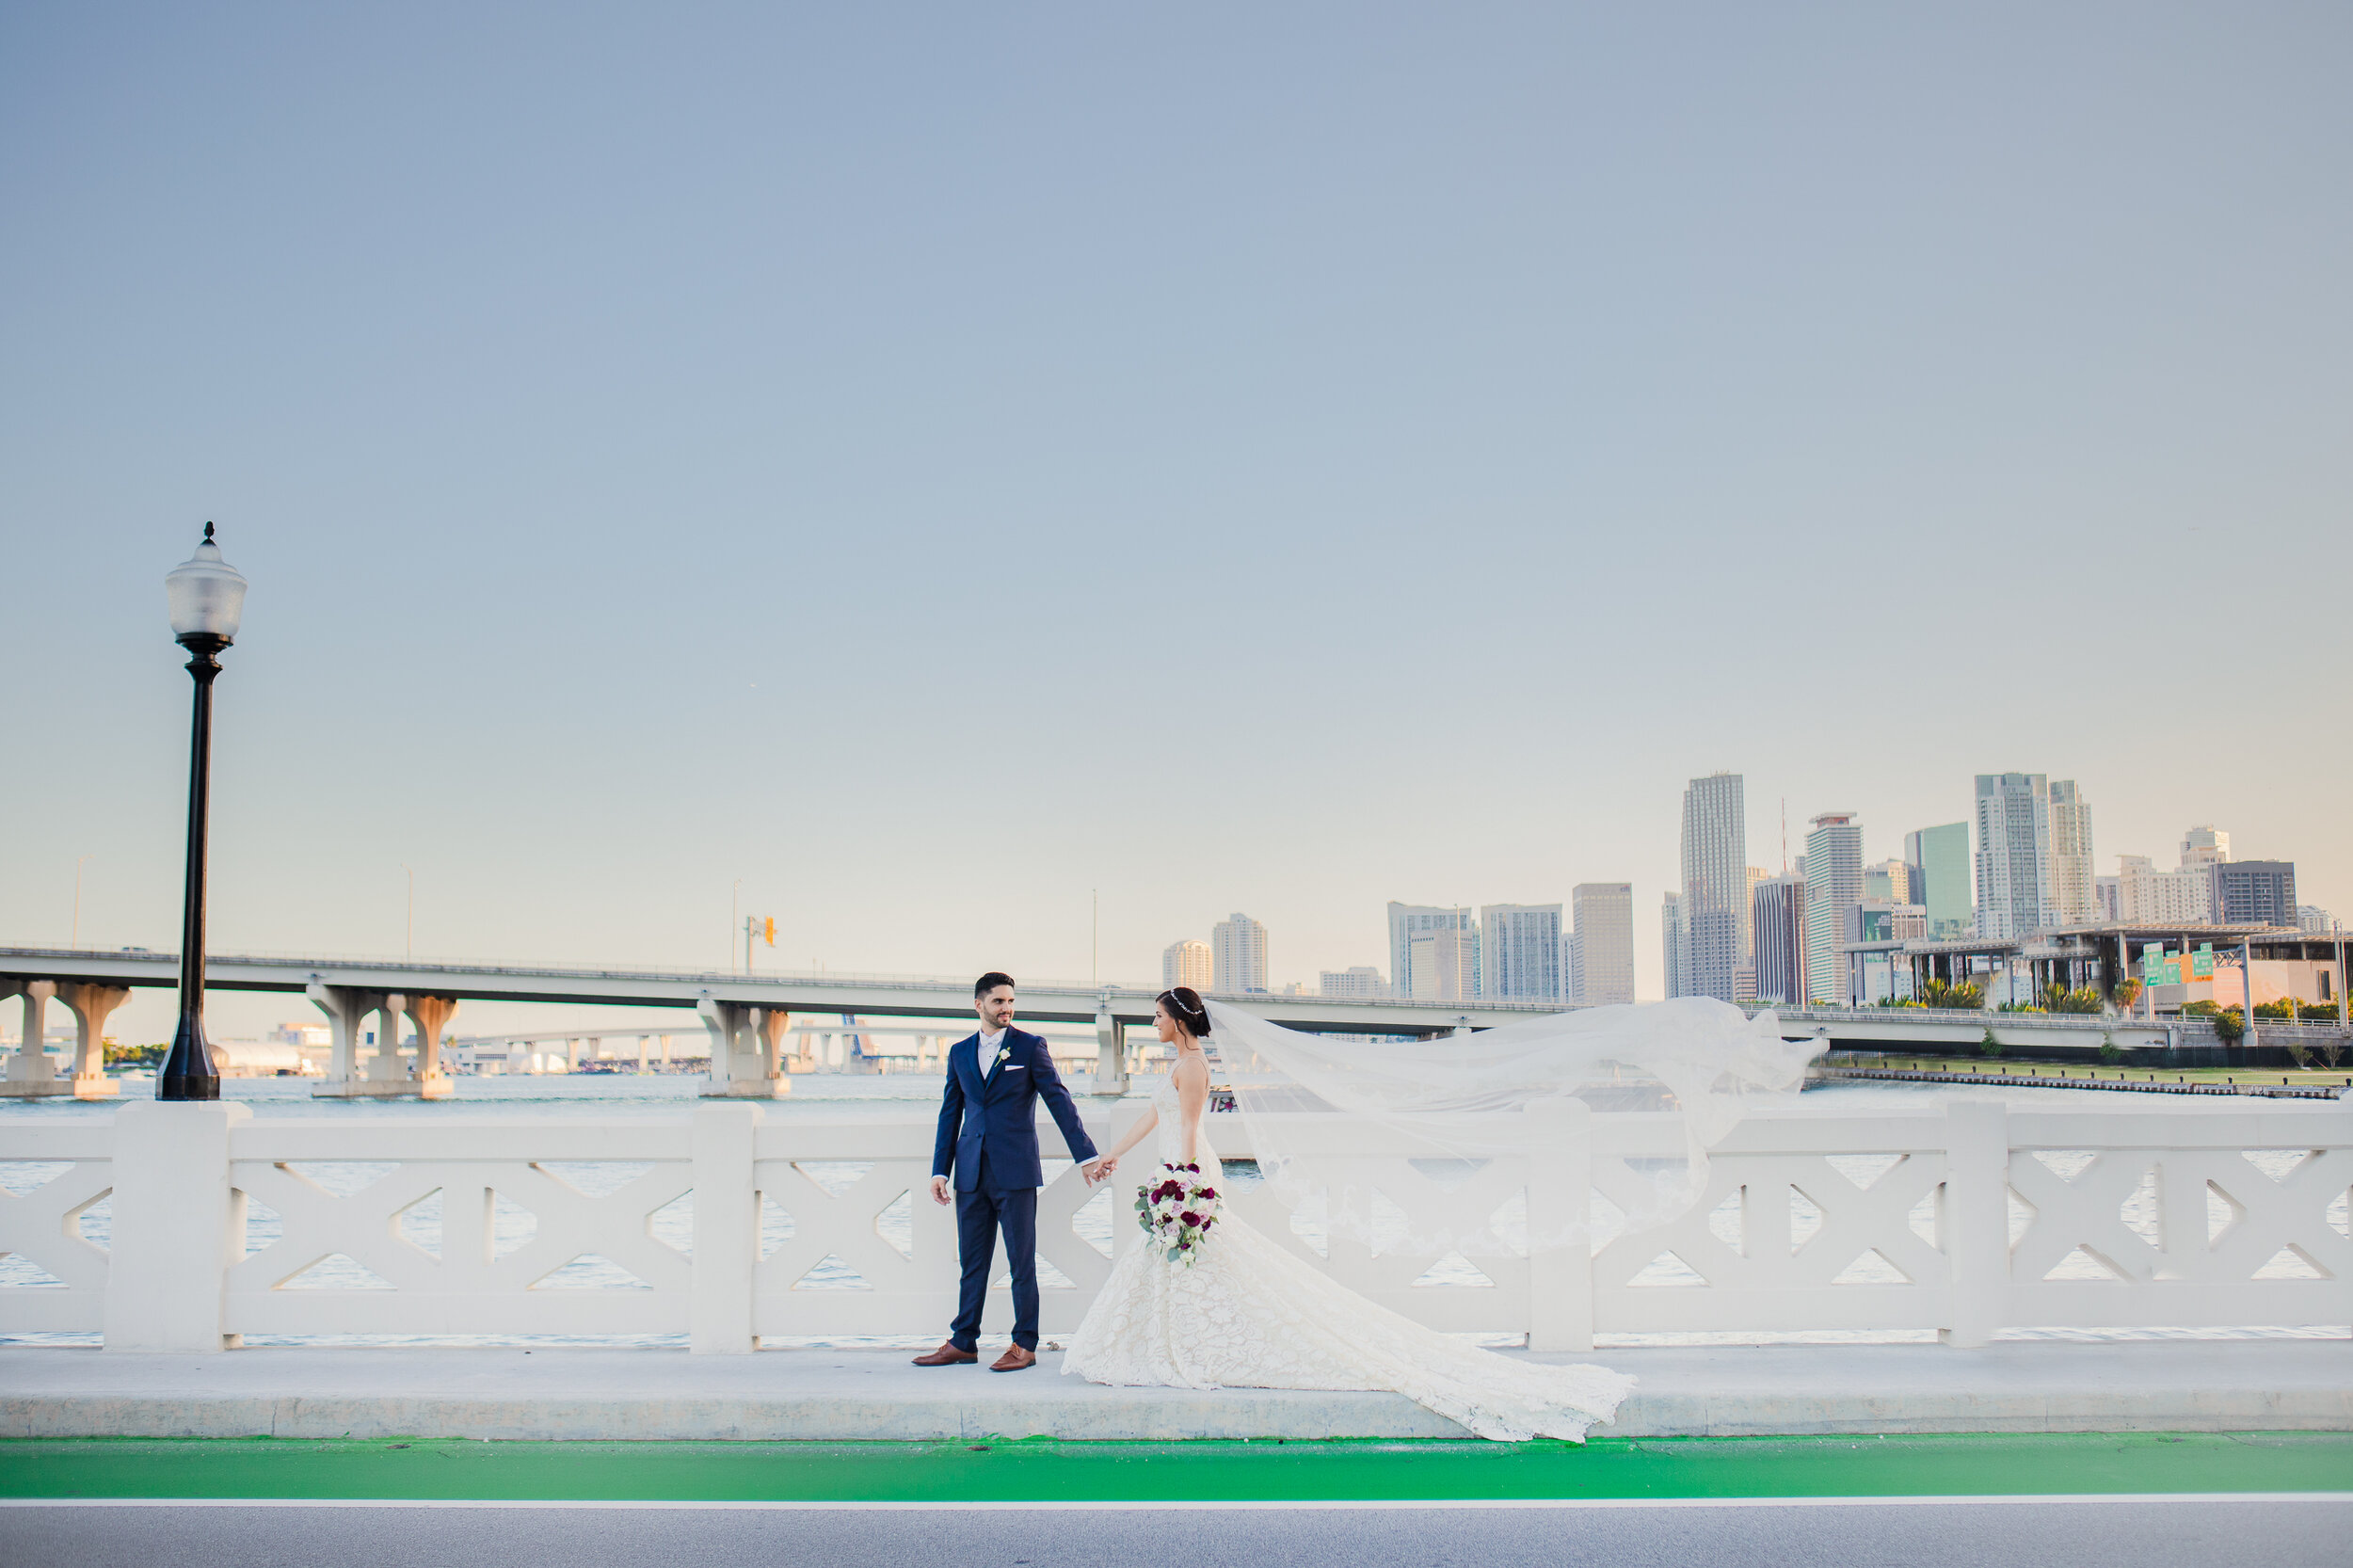 Miami Marriott Biscayne Bay Wedding | Miami Wedding Photographer Dipp Photography.jpg